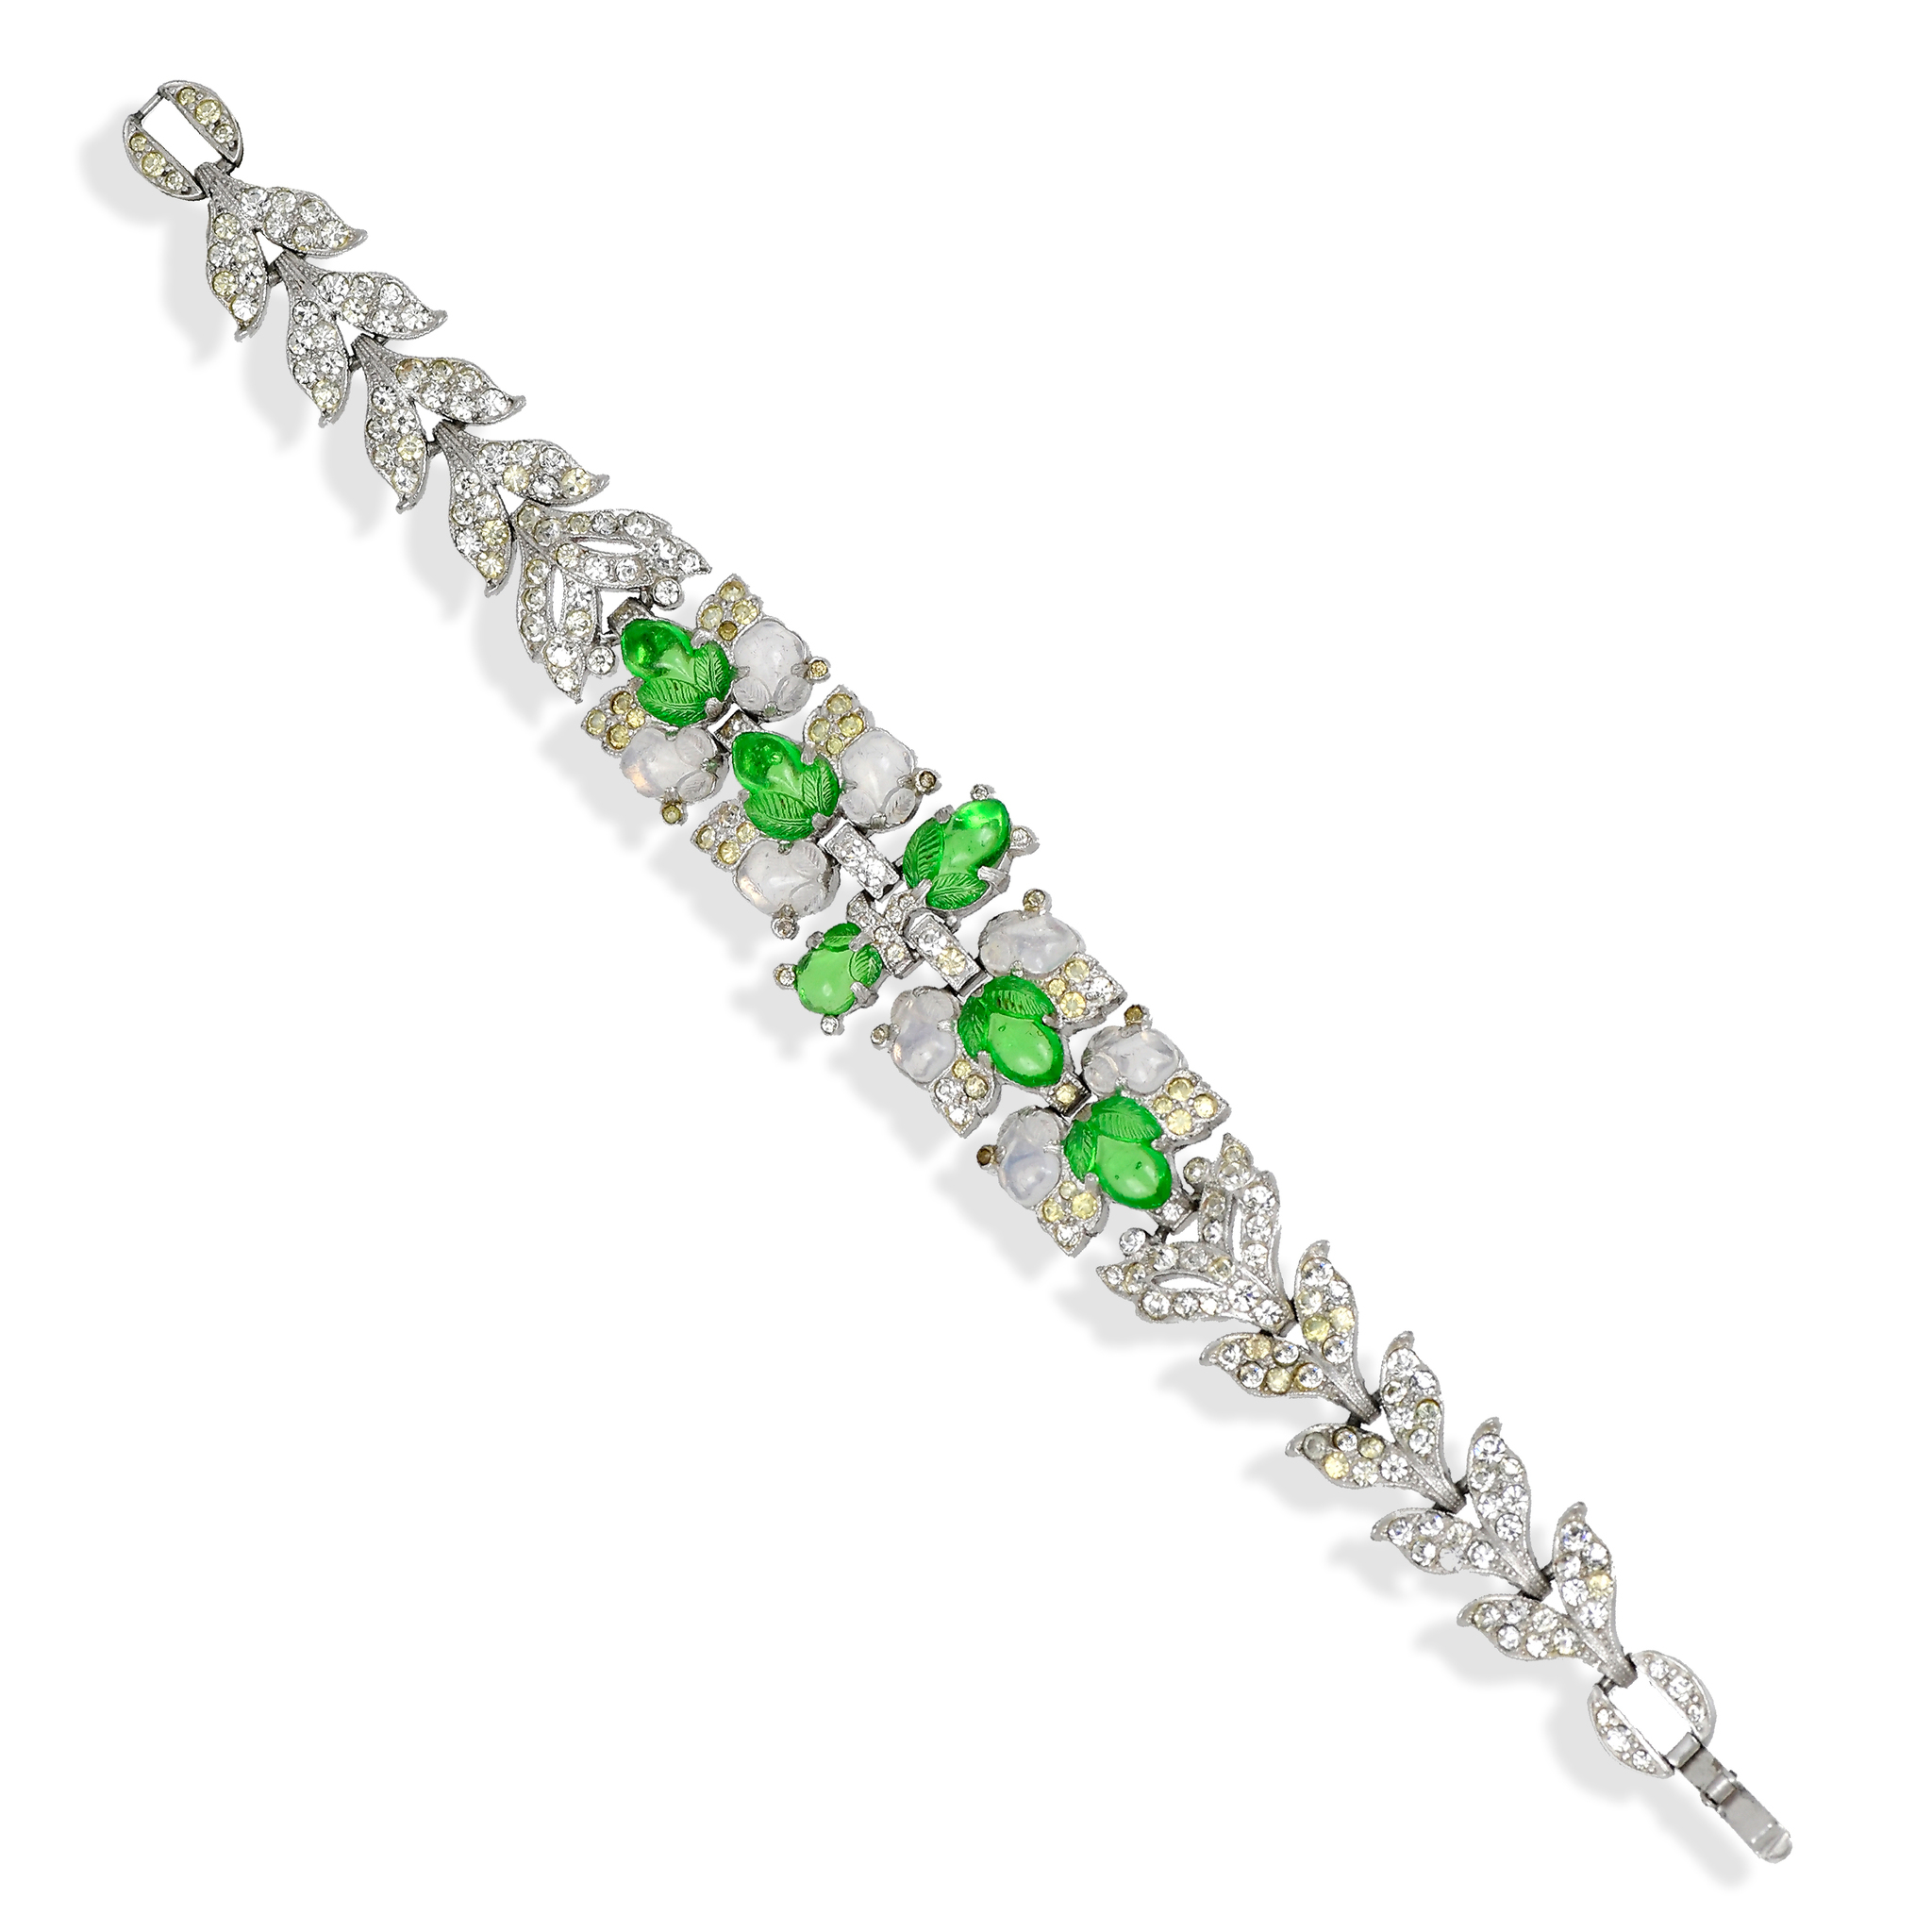 Trifari 'Alfred Philippe' Rhinestones and Green Fruit Salads Bracelet